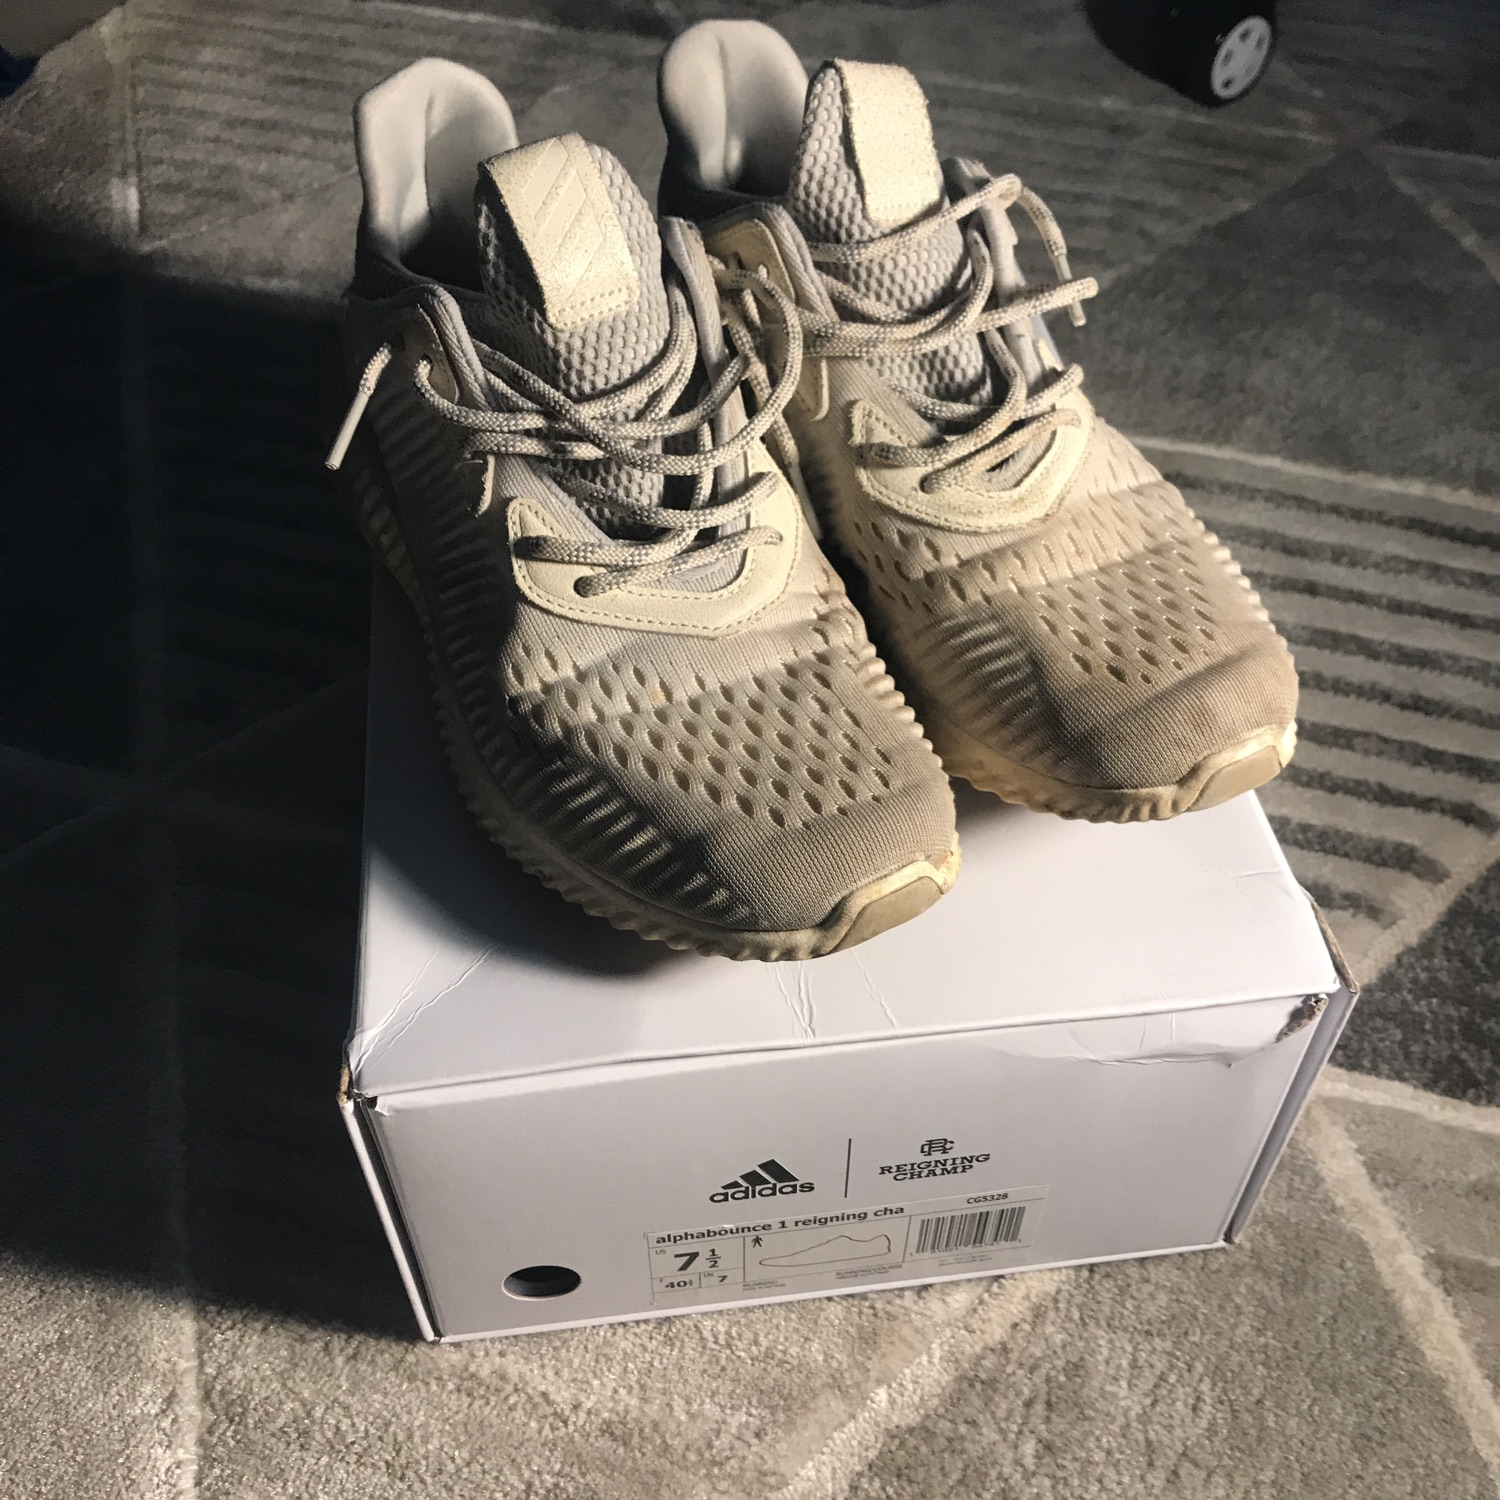 wholesale dealer fce4f 9aea9 Adidas Alphabounce 1 Reigning Champ